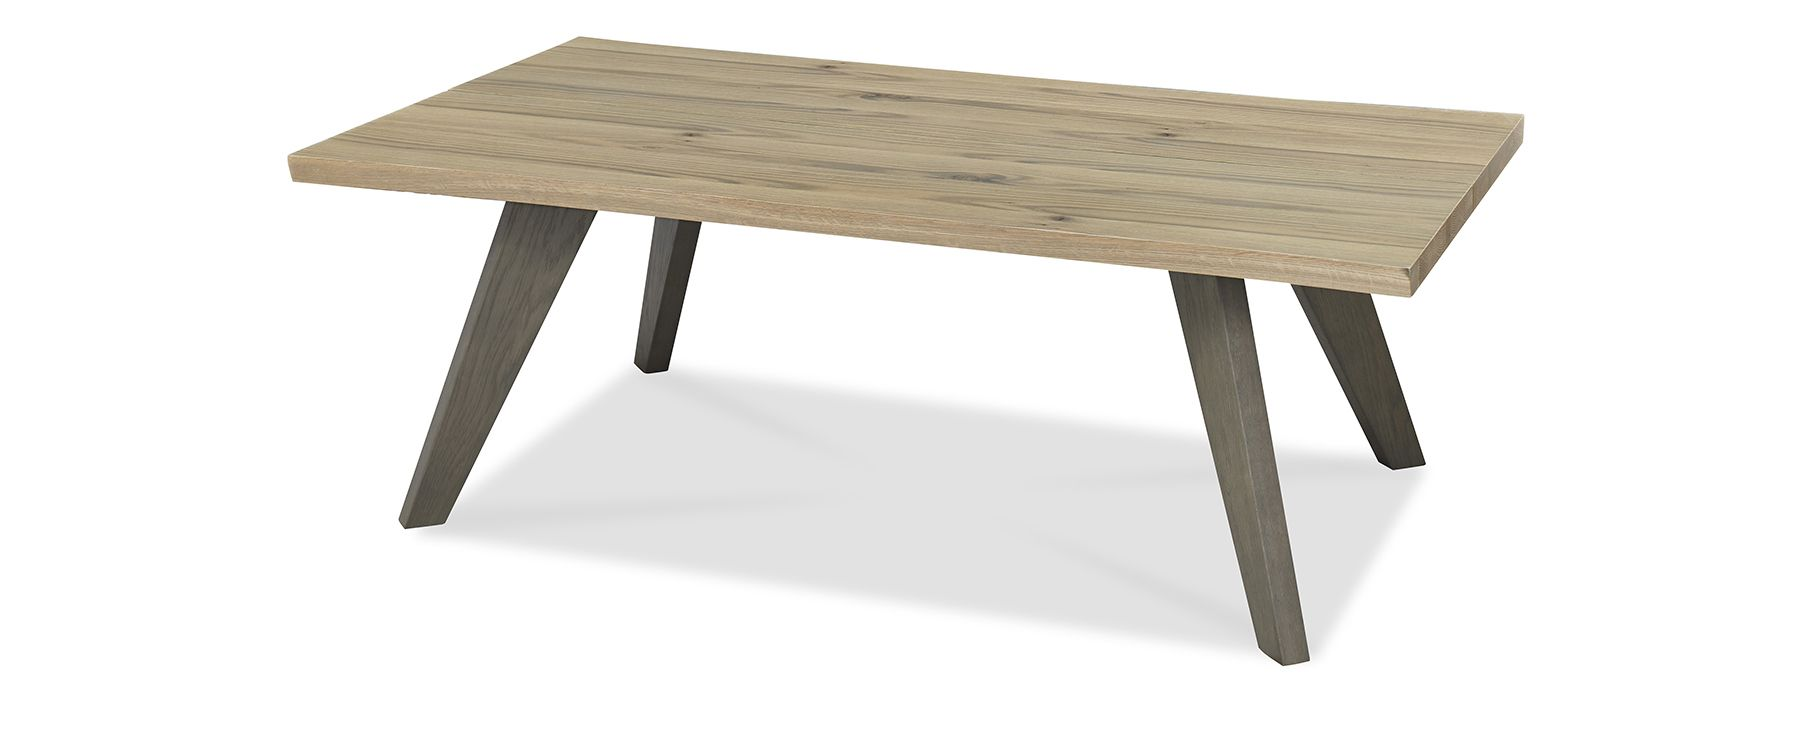 CARELL COFFEE TABLE - L121cm x D70cm xH40cm - ANGLE DETAIL